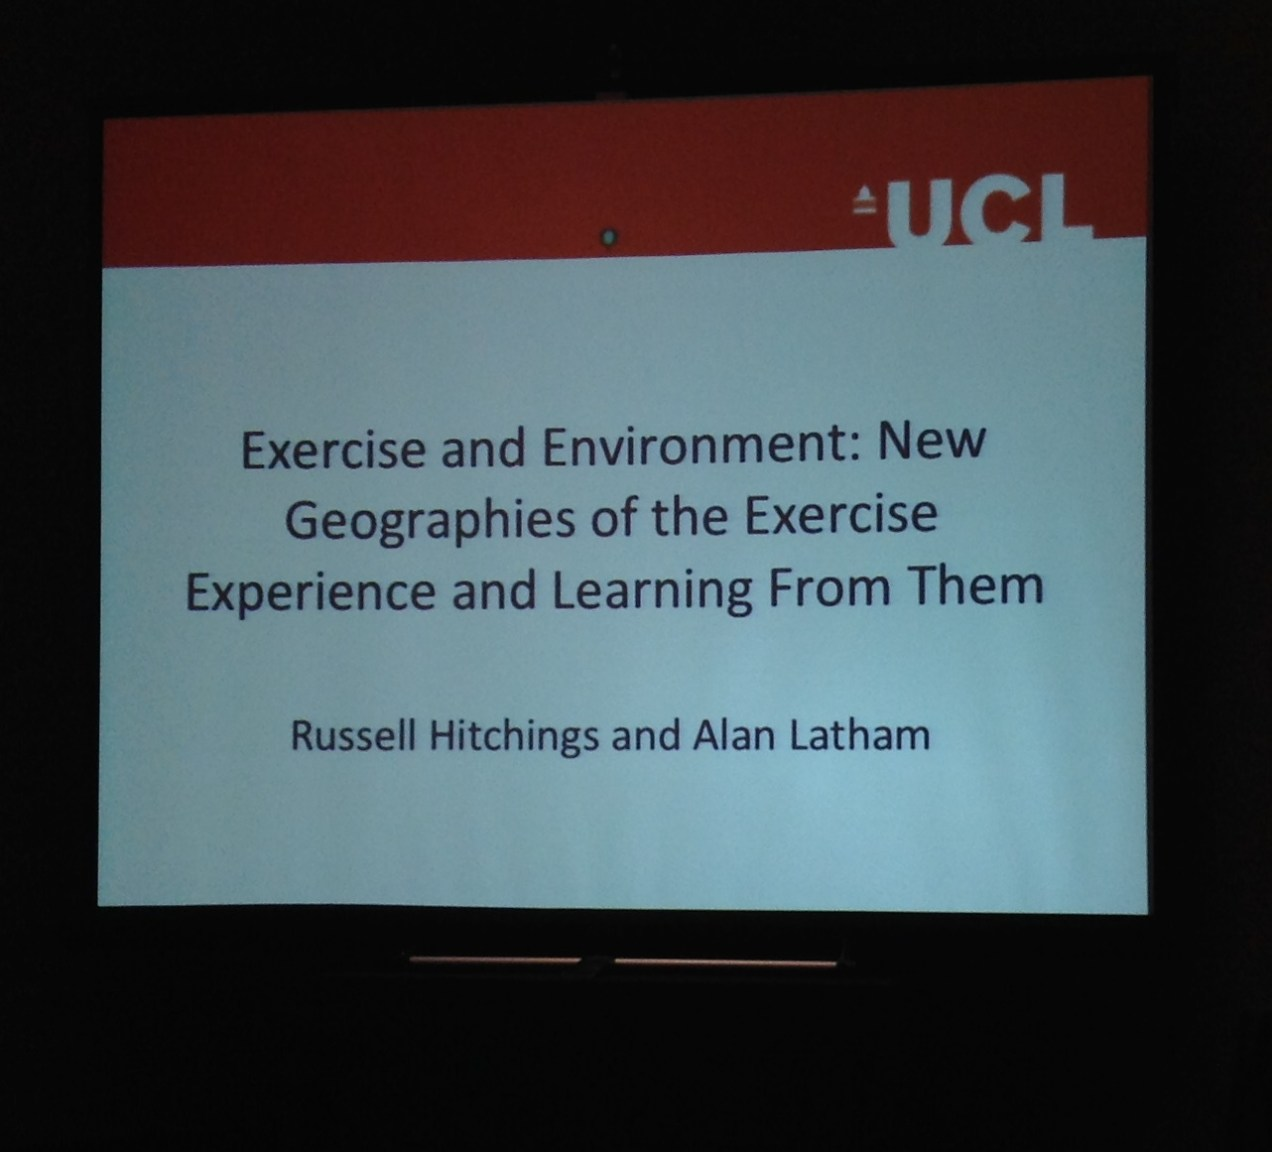 Exercise and Environment by Drs Russell Hitchings and Alan Latham